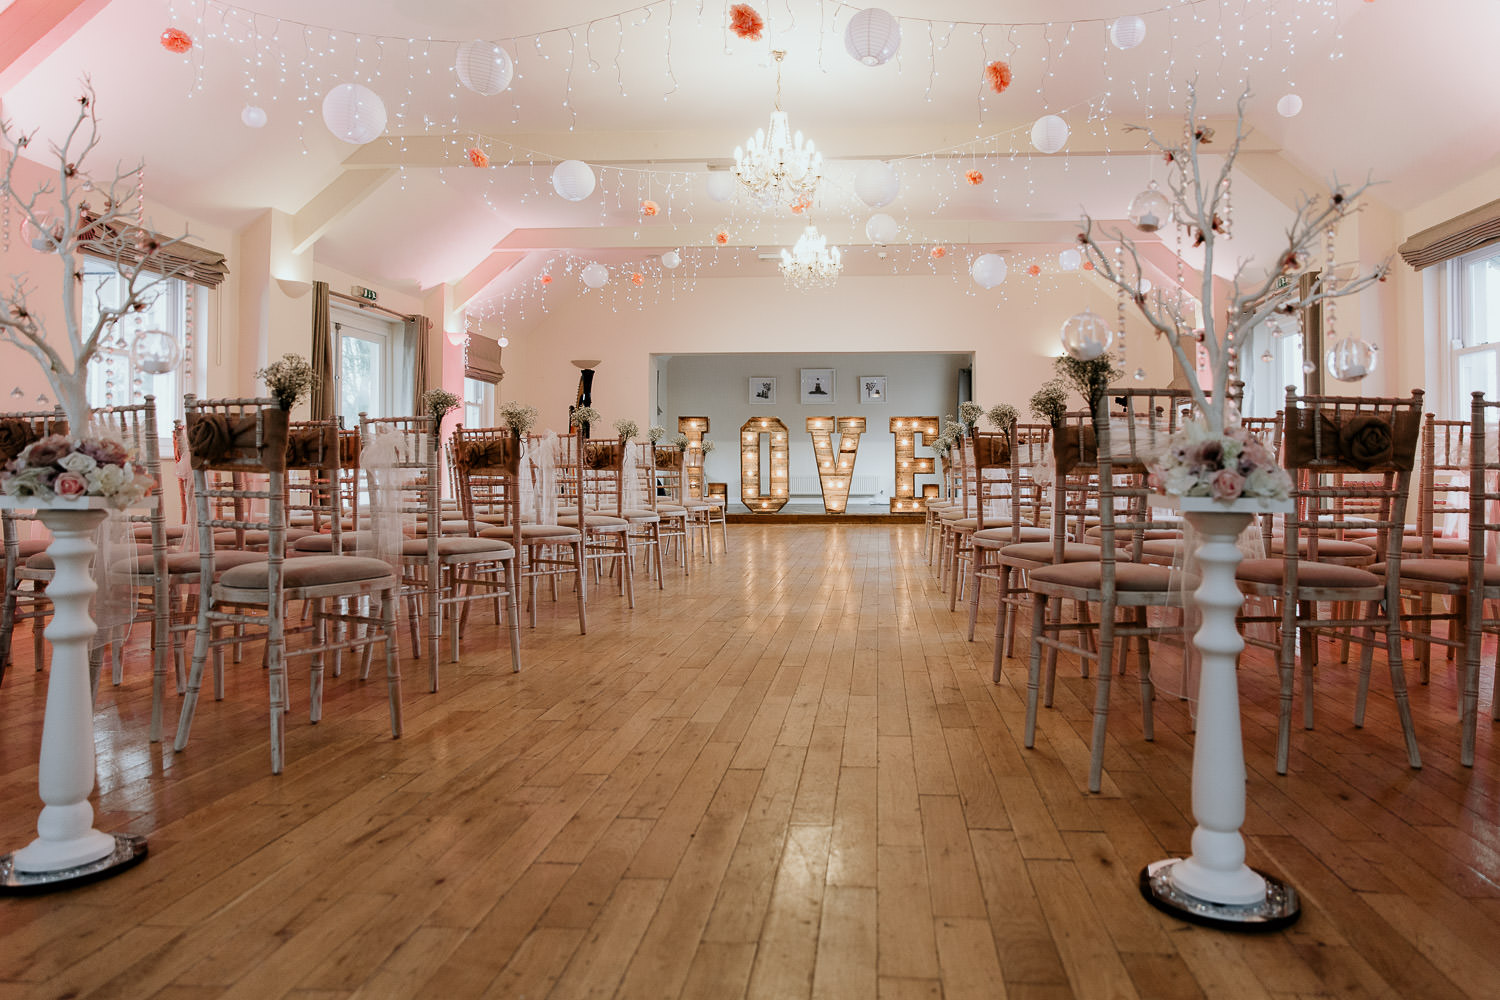 romantic and fun ceremony venue decorated with pink and white vintage chairs fairly lights hanging paper balls and large light up LOVE sign